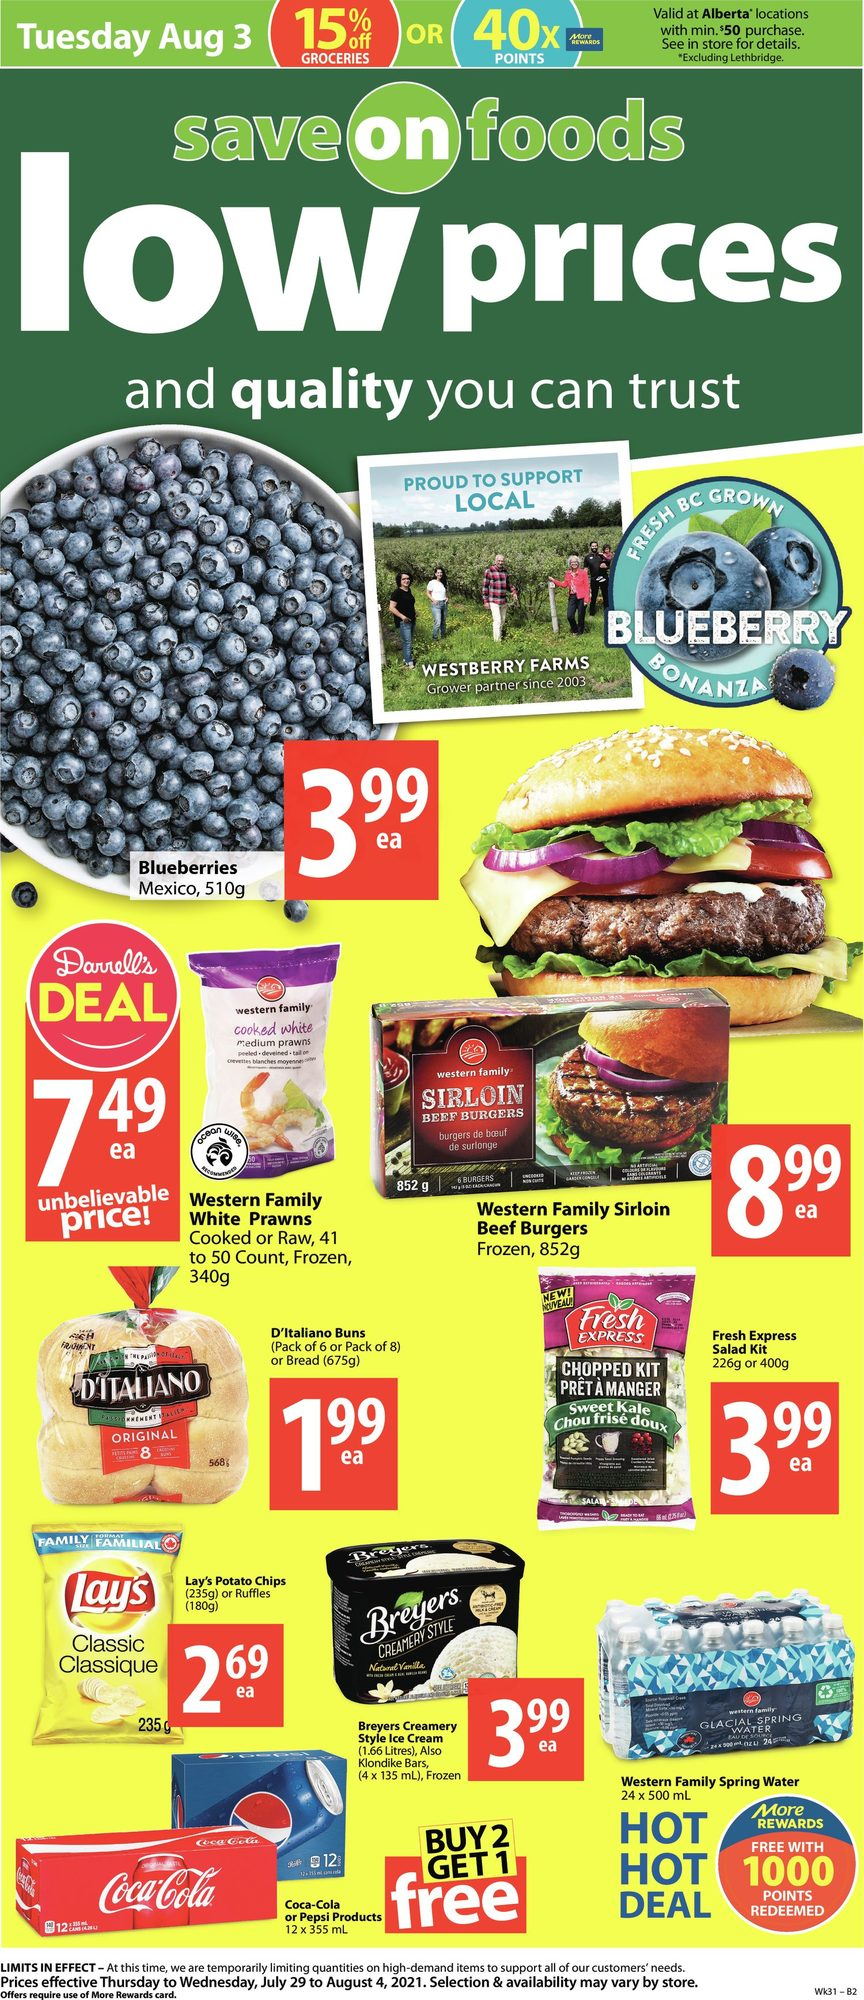 Save-On-Foods - Weekly Flyer Specials